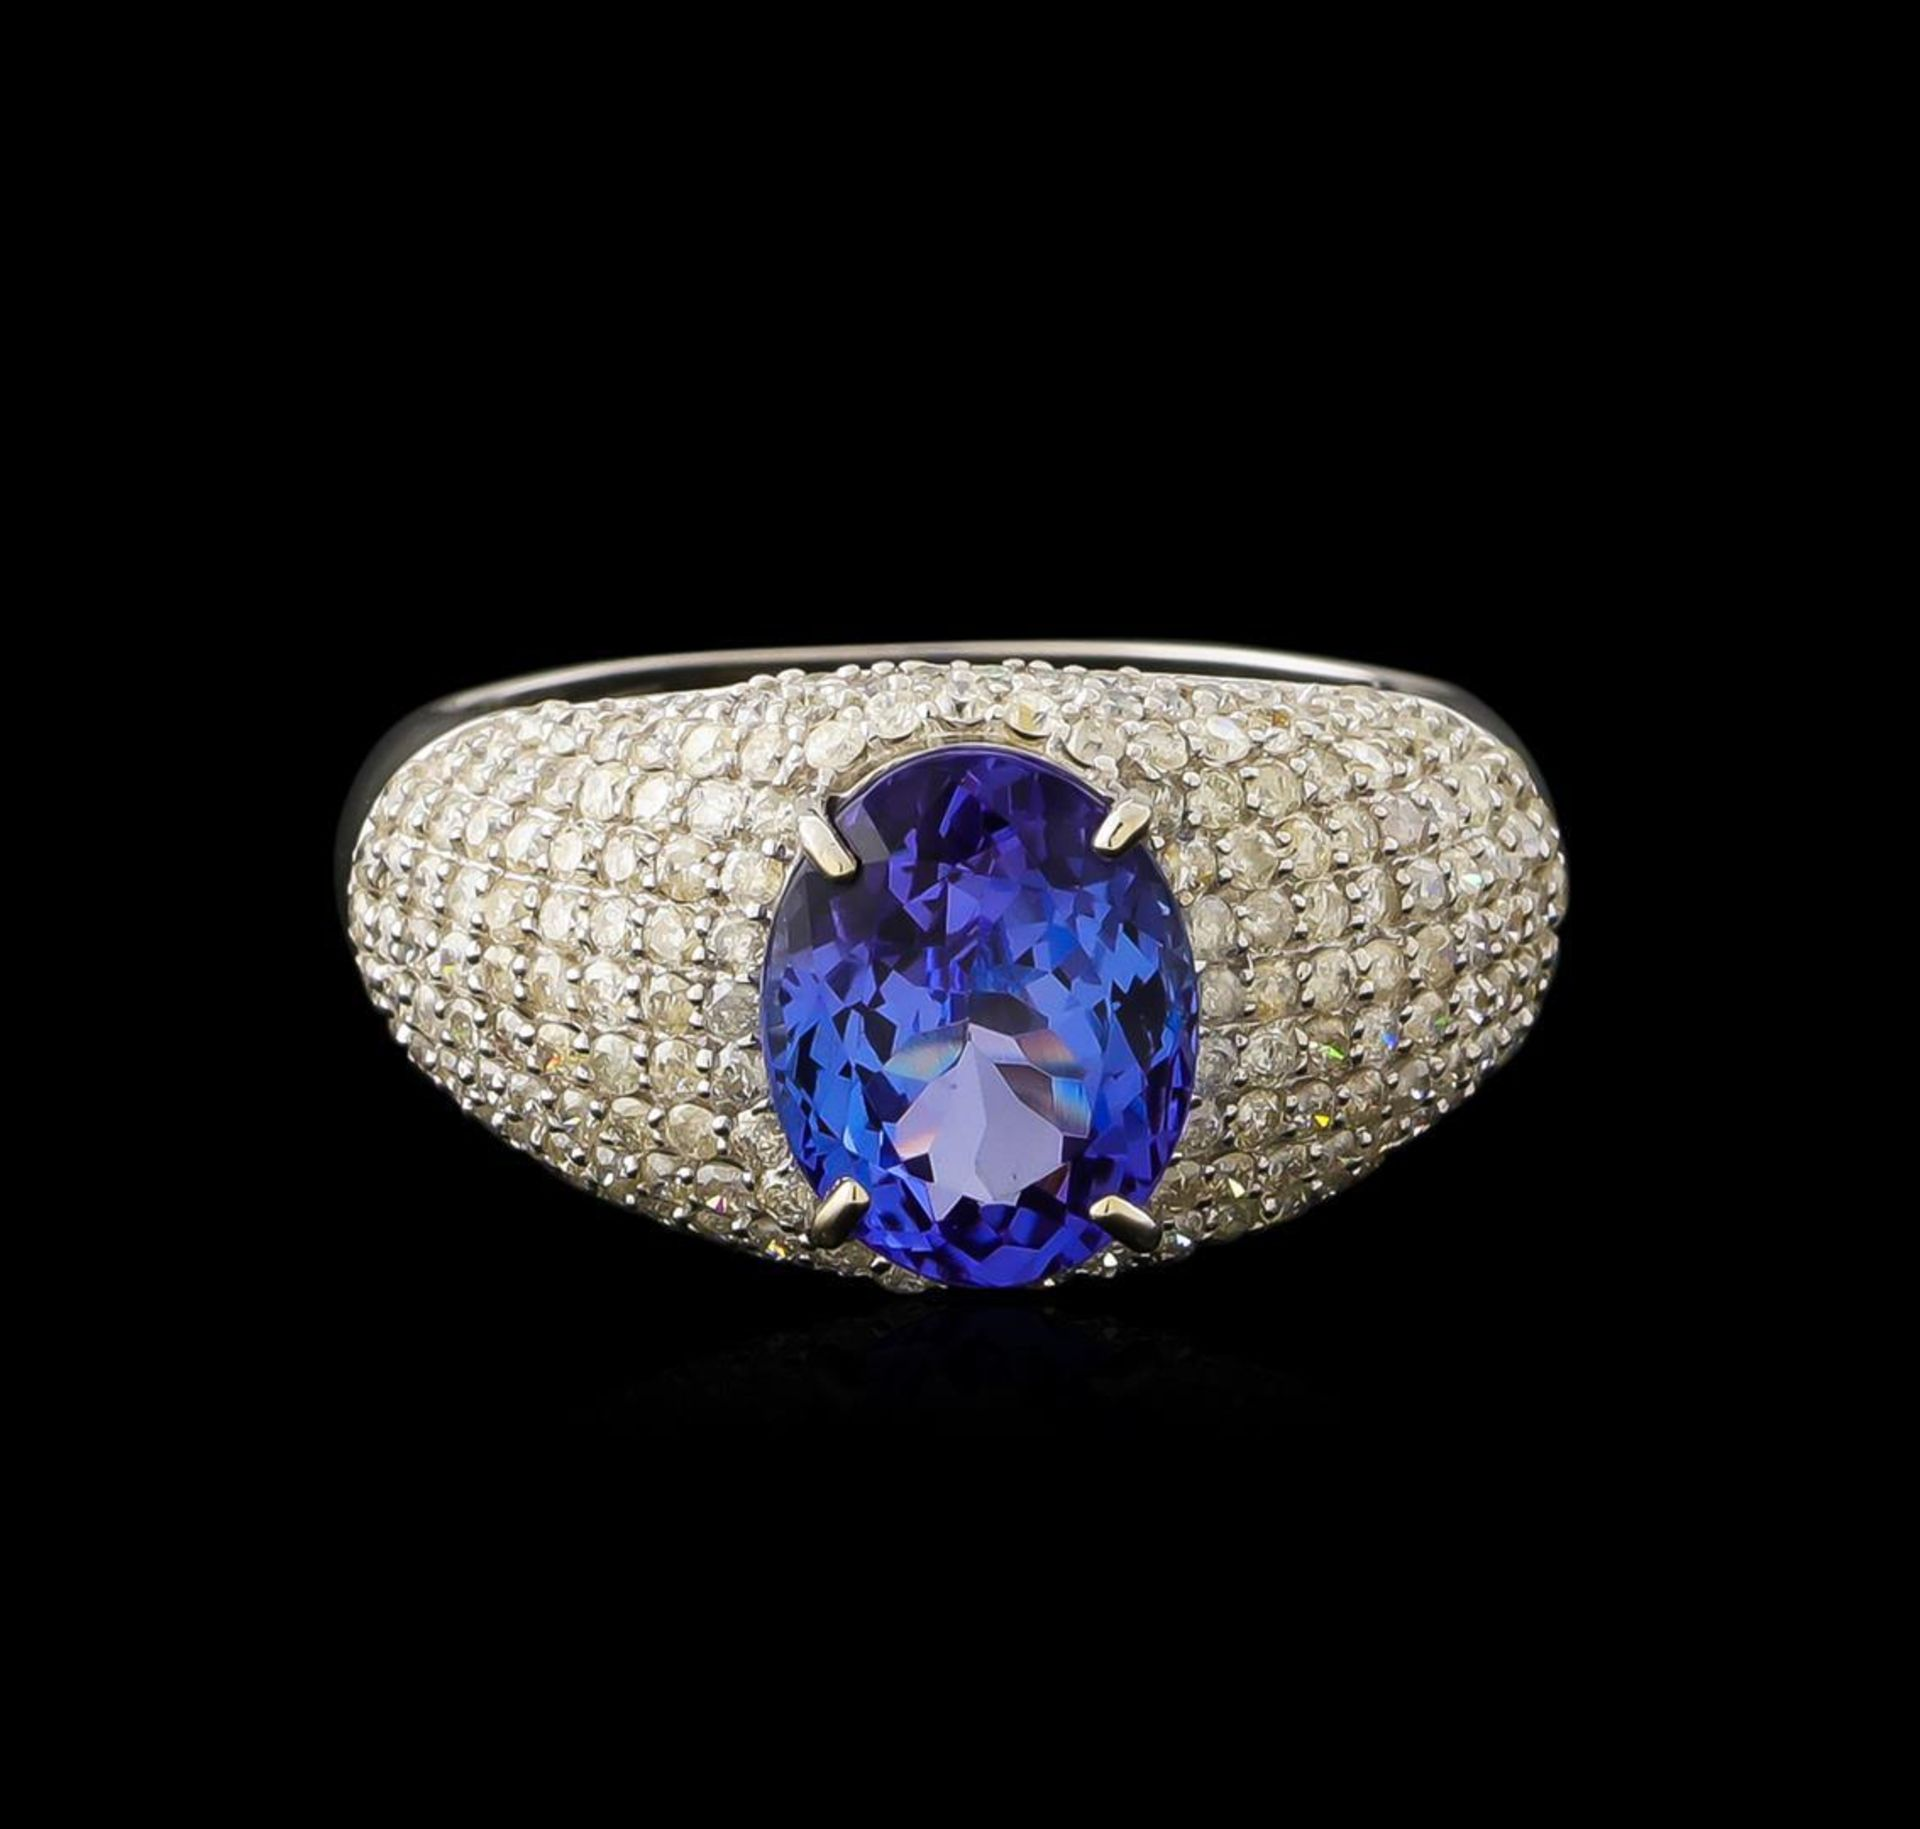 2.77ct Tanzanite and Diamond Ring - 14KT White Gold - Image 2 of 5